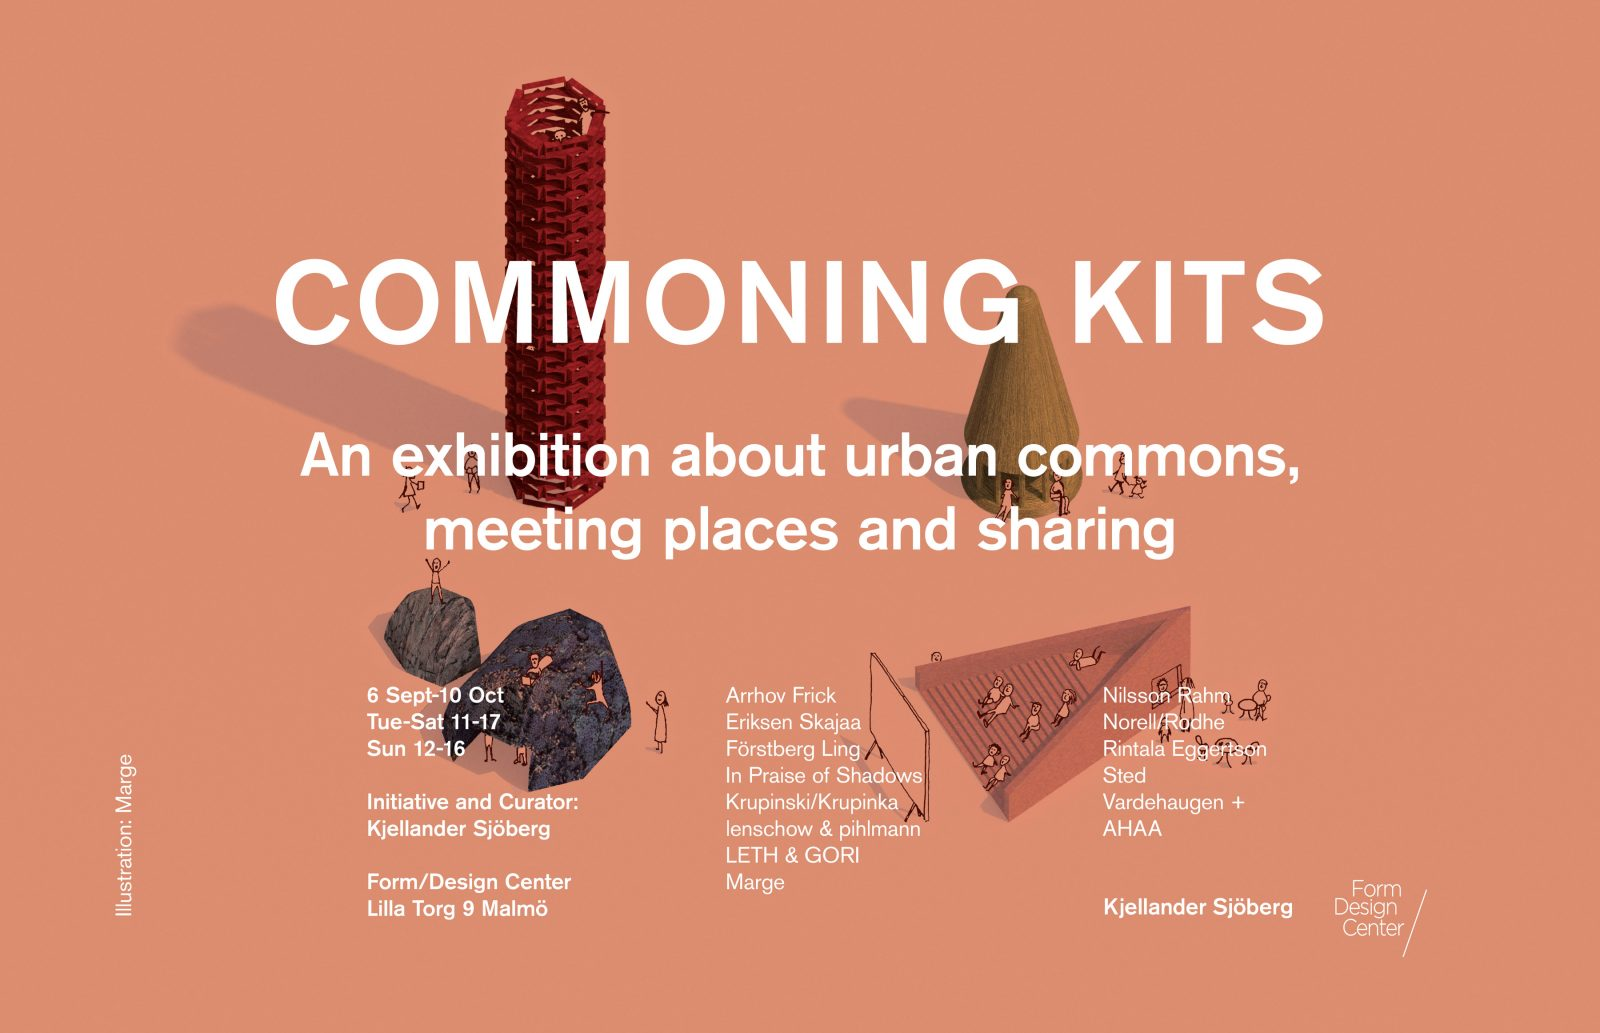 170707 Commoning-Kits web eng participants lowres